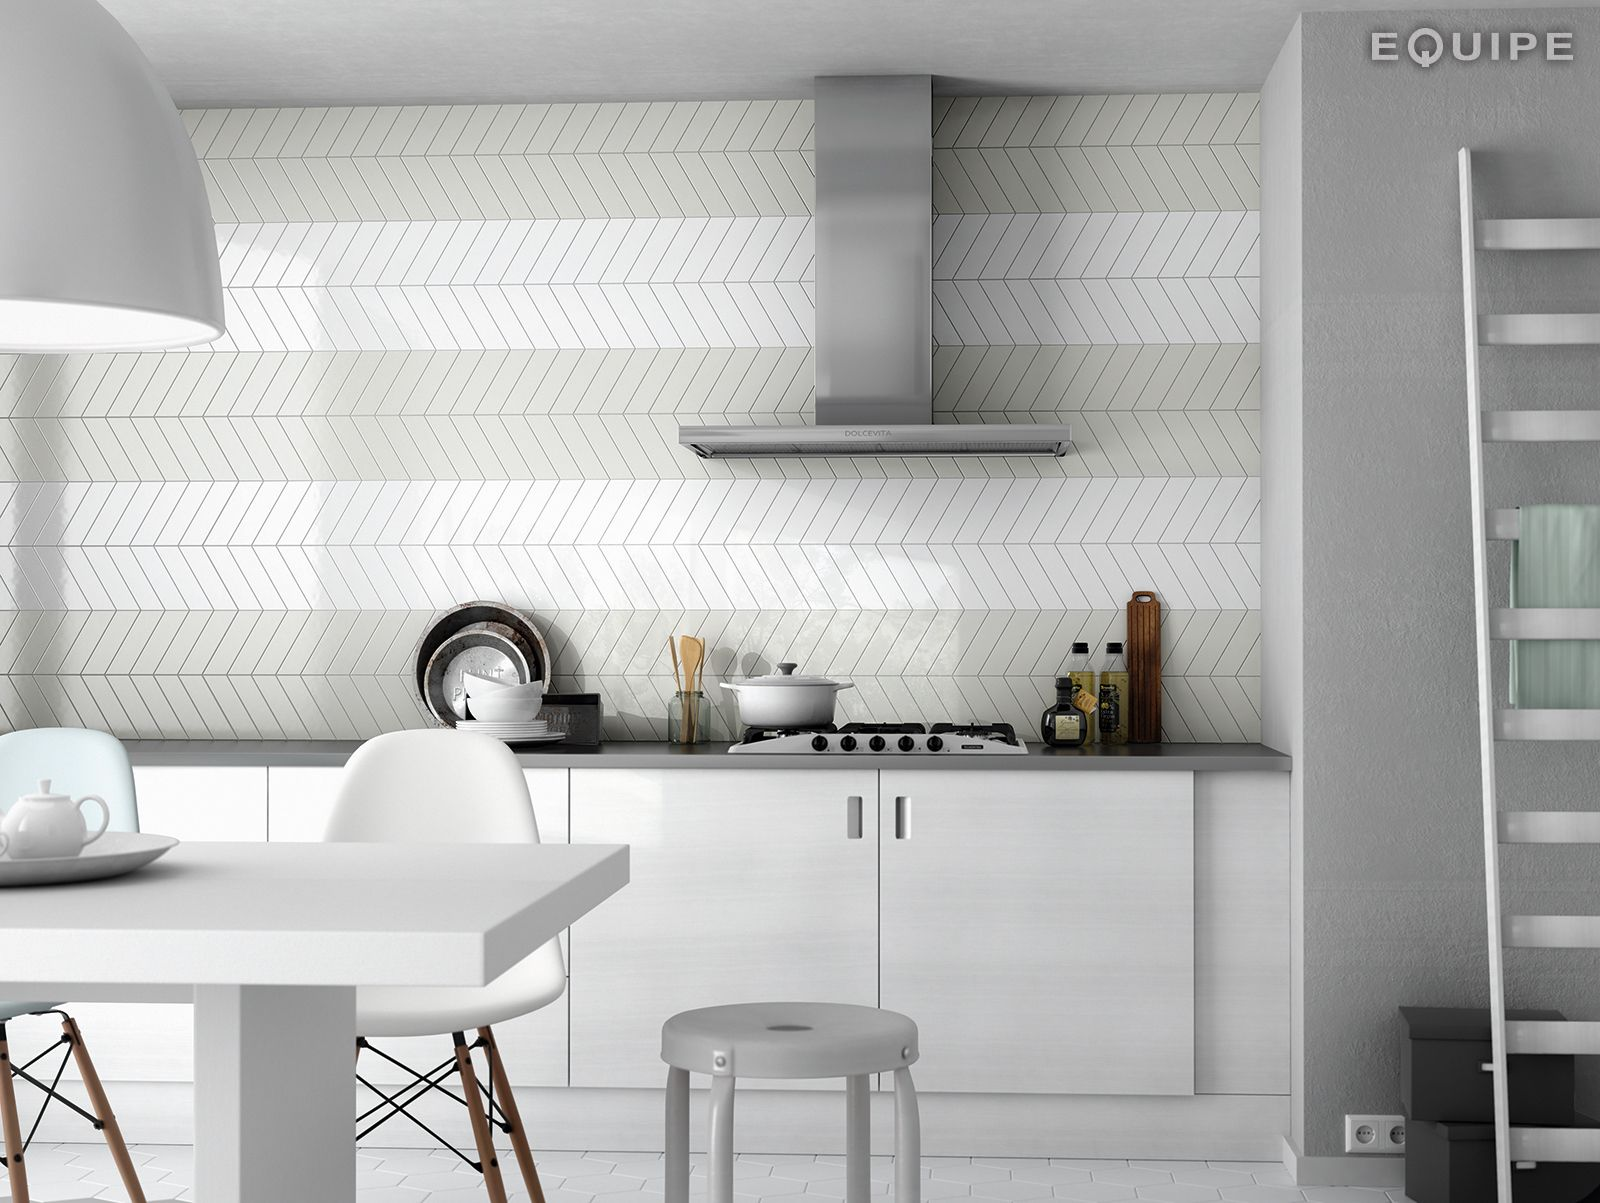 these new chevron wall tiles would make a stunning splashback or